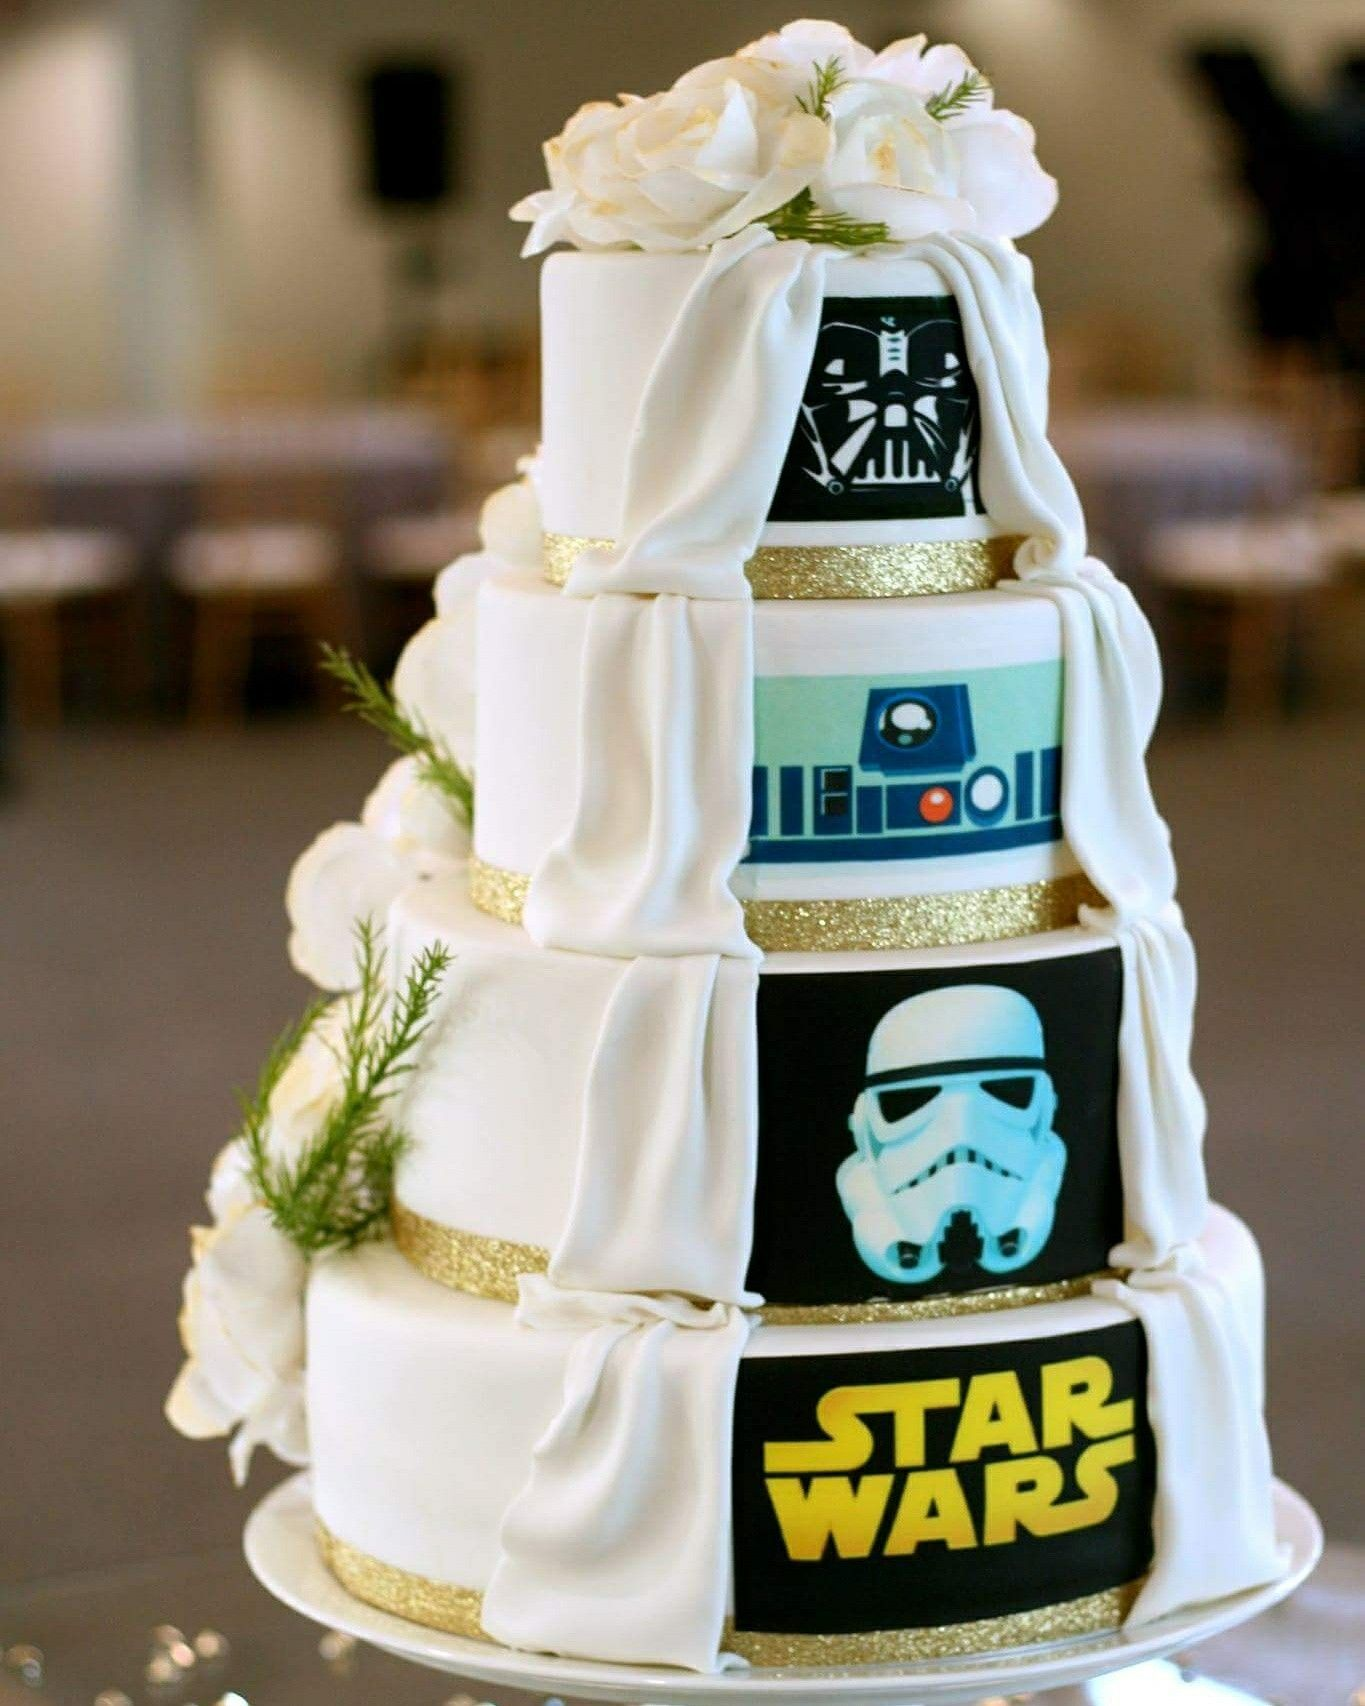 Star Wars Wedding Cake: Star Wars Wedding Cake By Sucre Seattle Www.sucreseattle